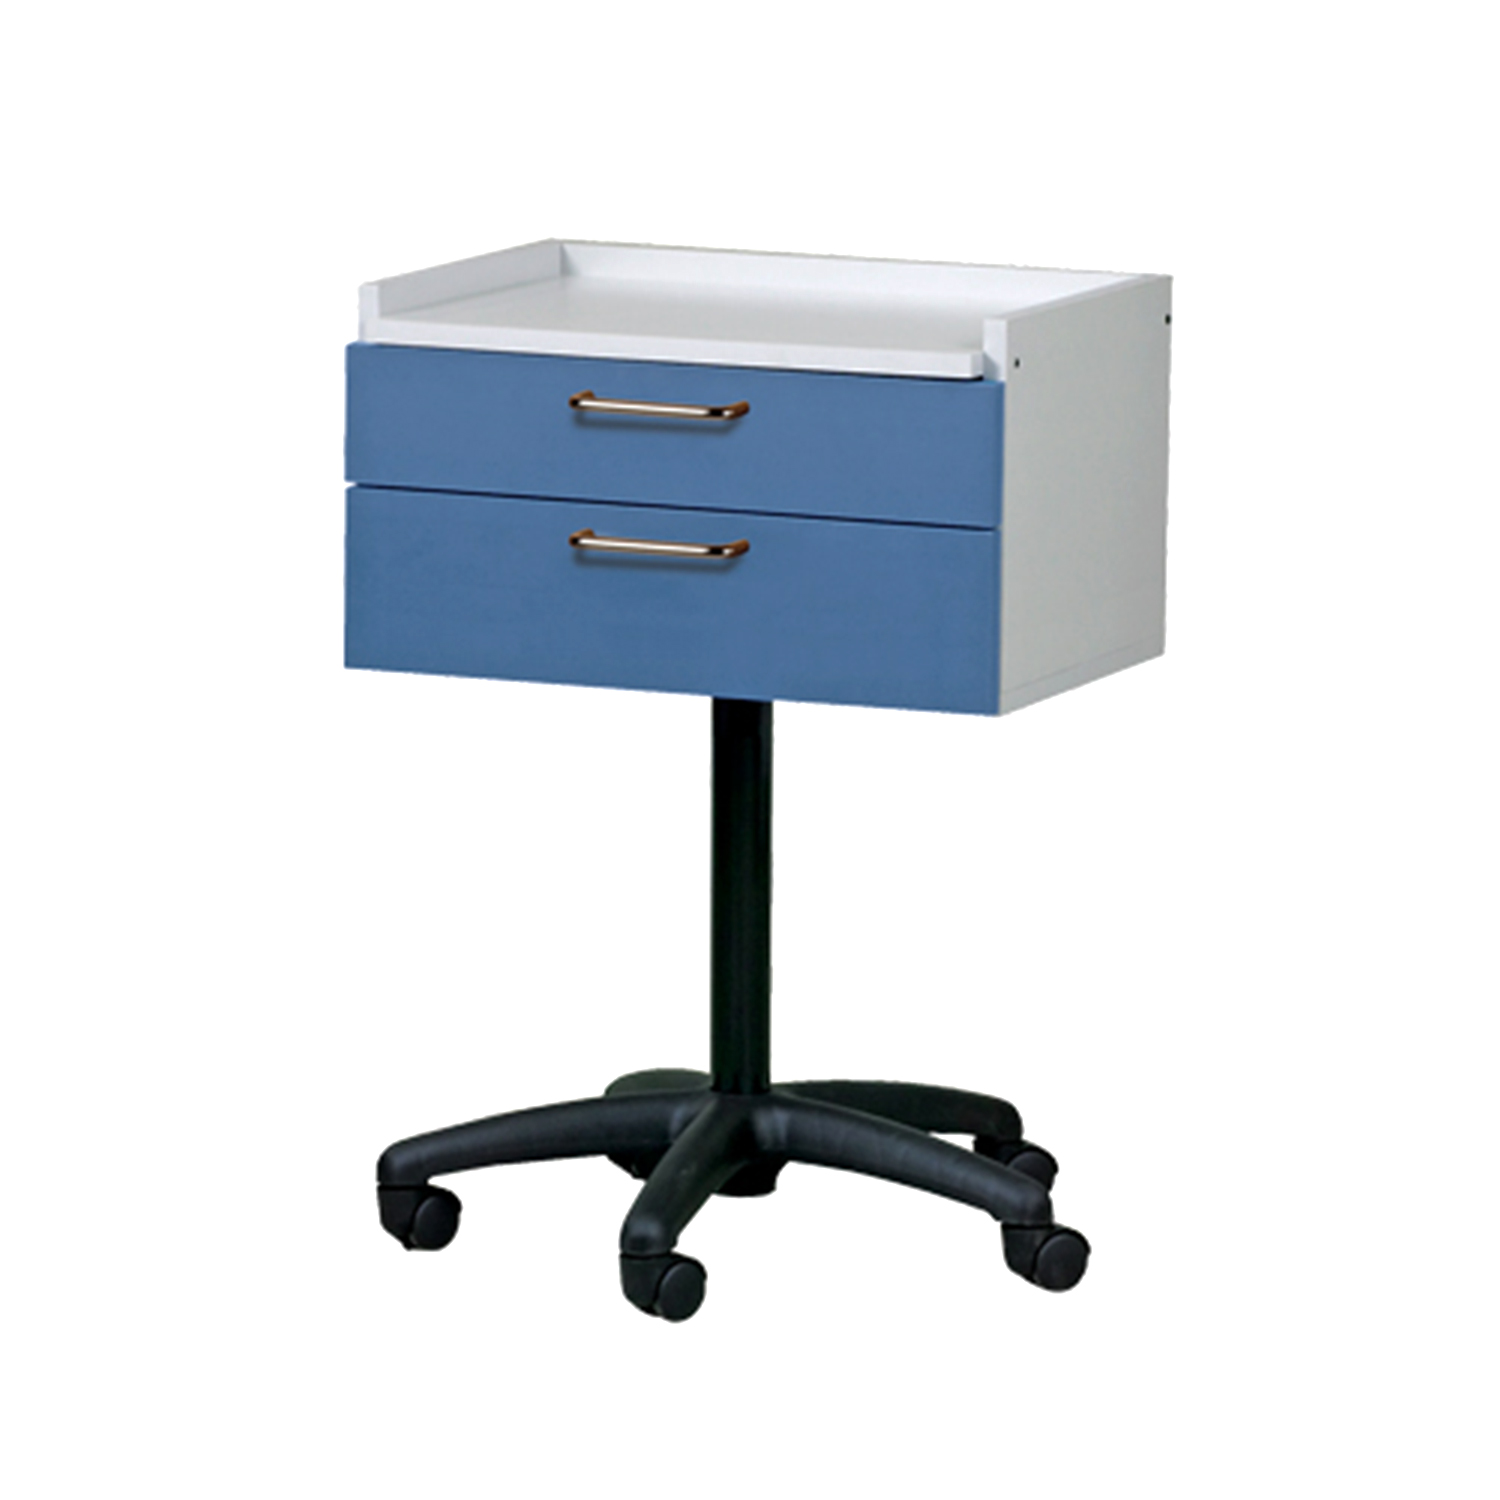 Mobile Equipment Cart with 2 Drawers